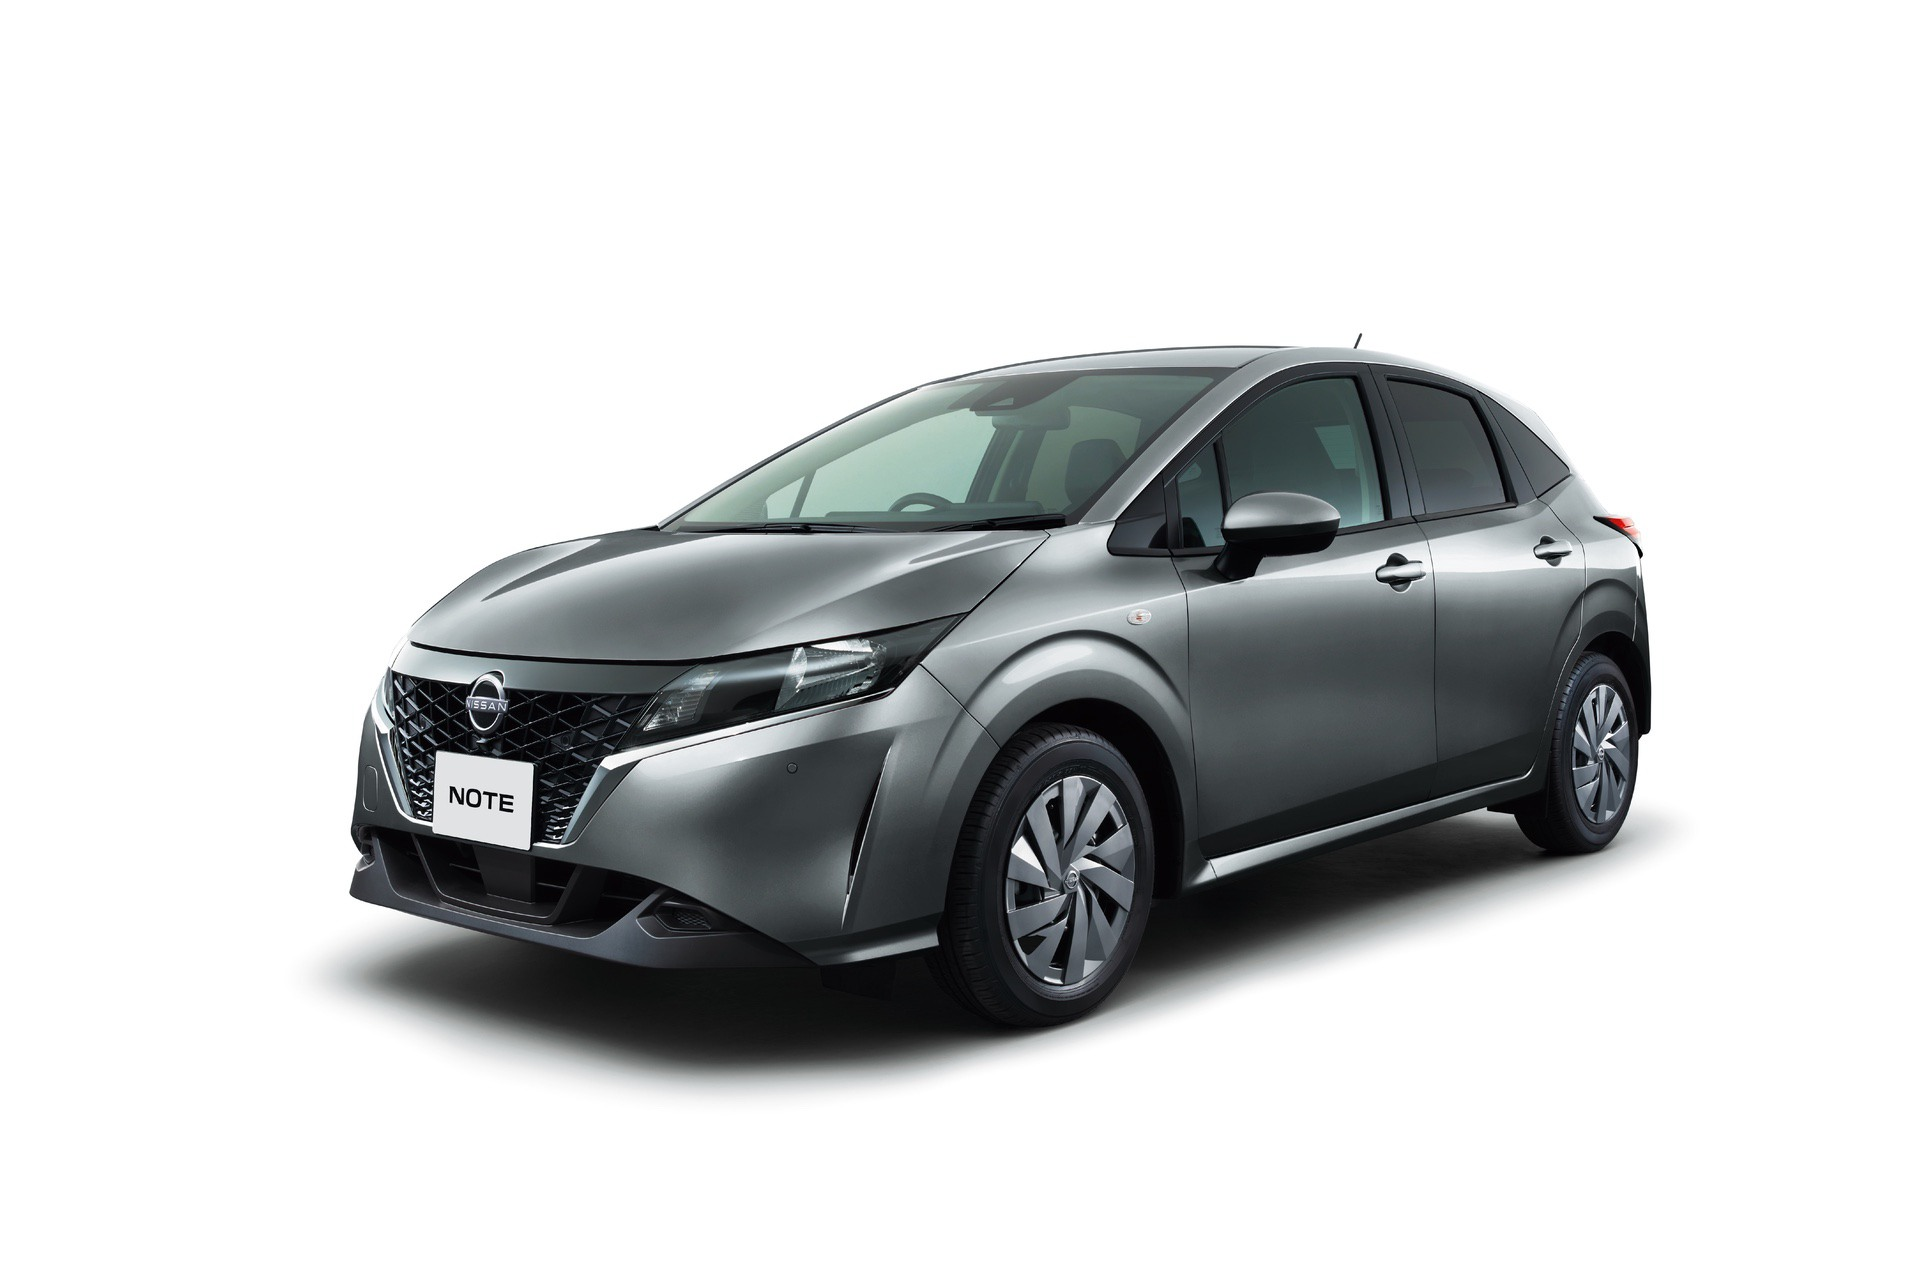 2021_Nissan_Note_0016